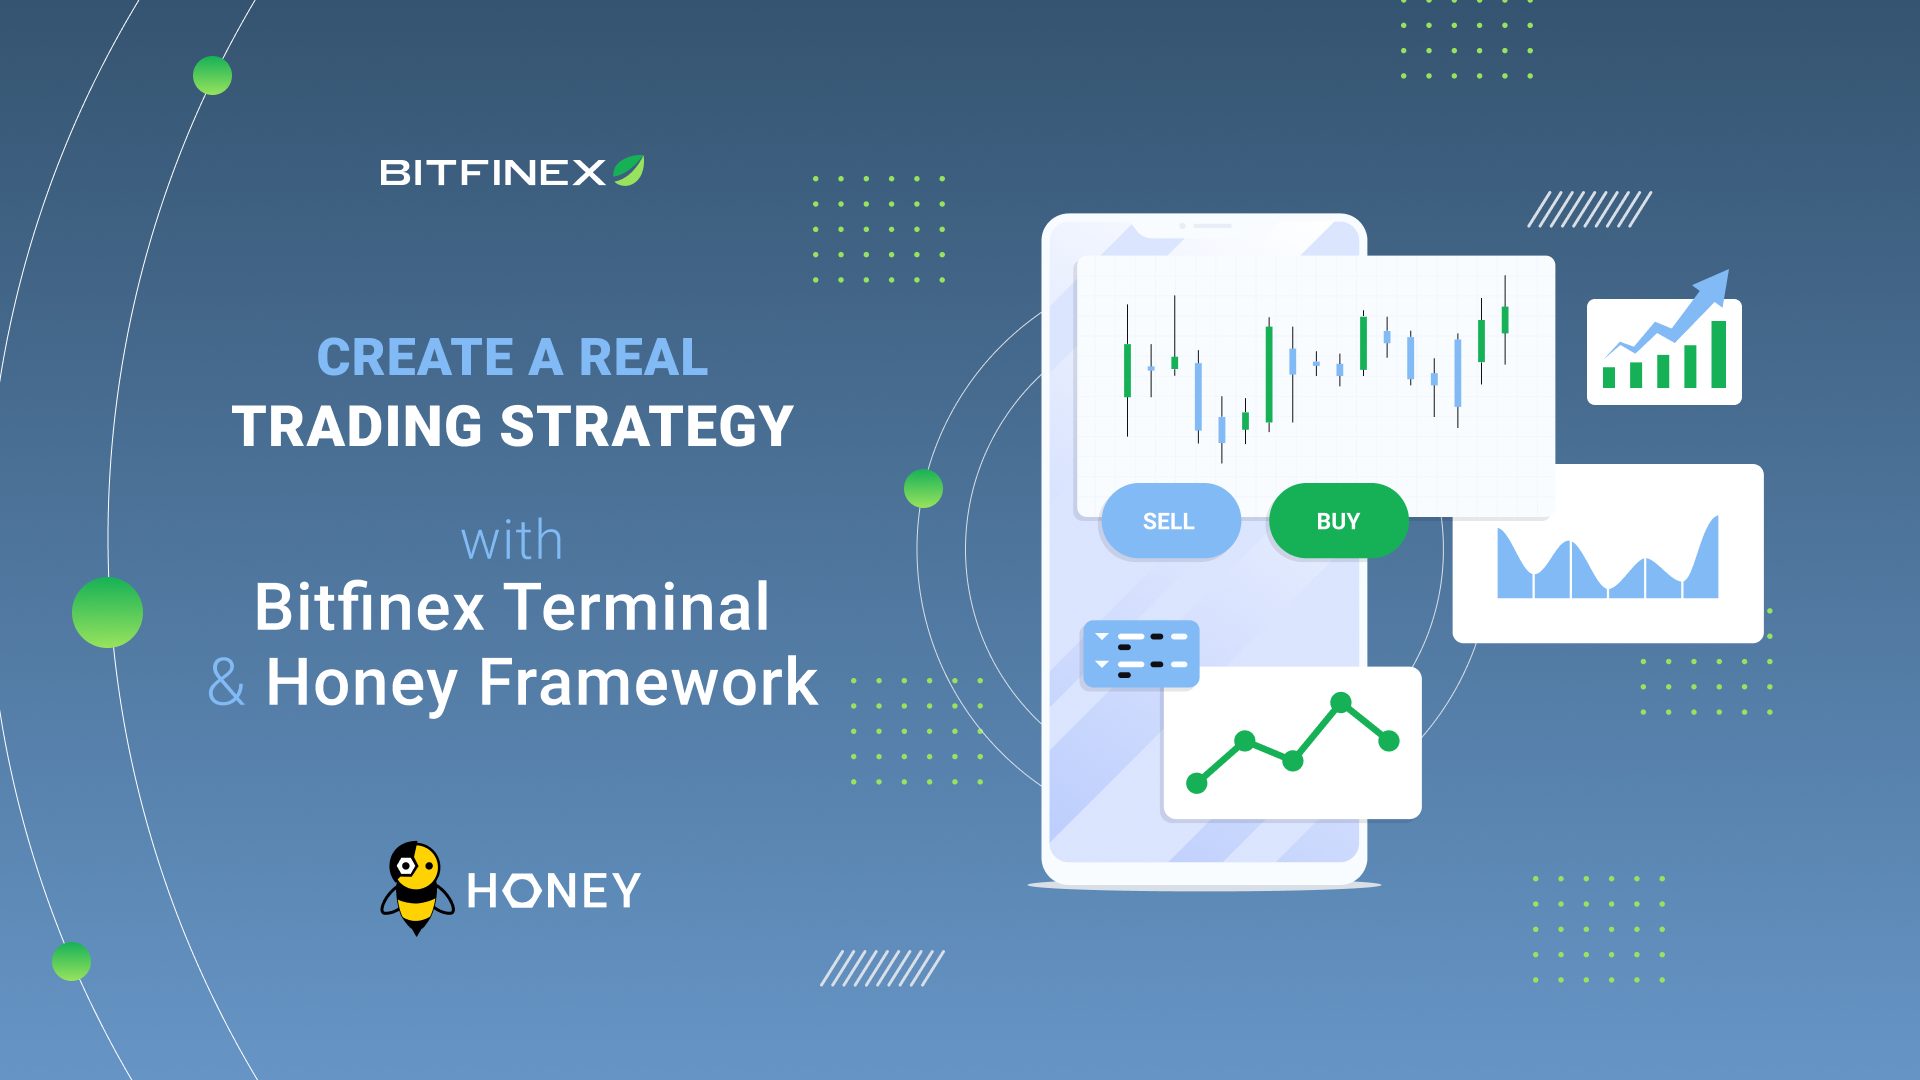 Execute your Trading Strategy with the Honey Framework and Bitfinex Terminal